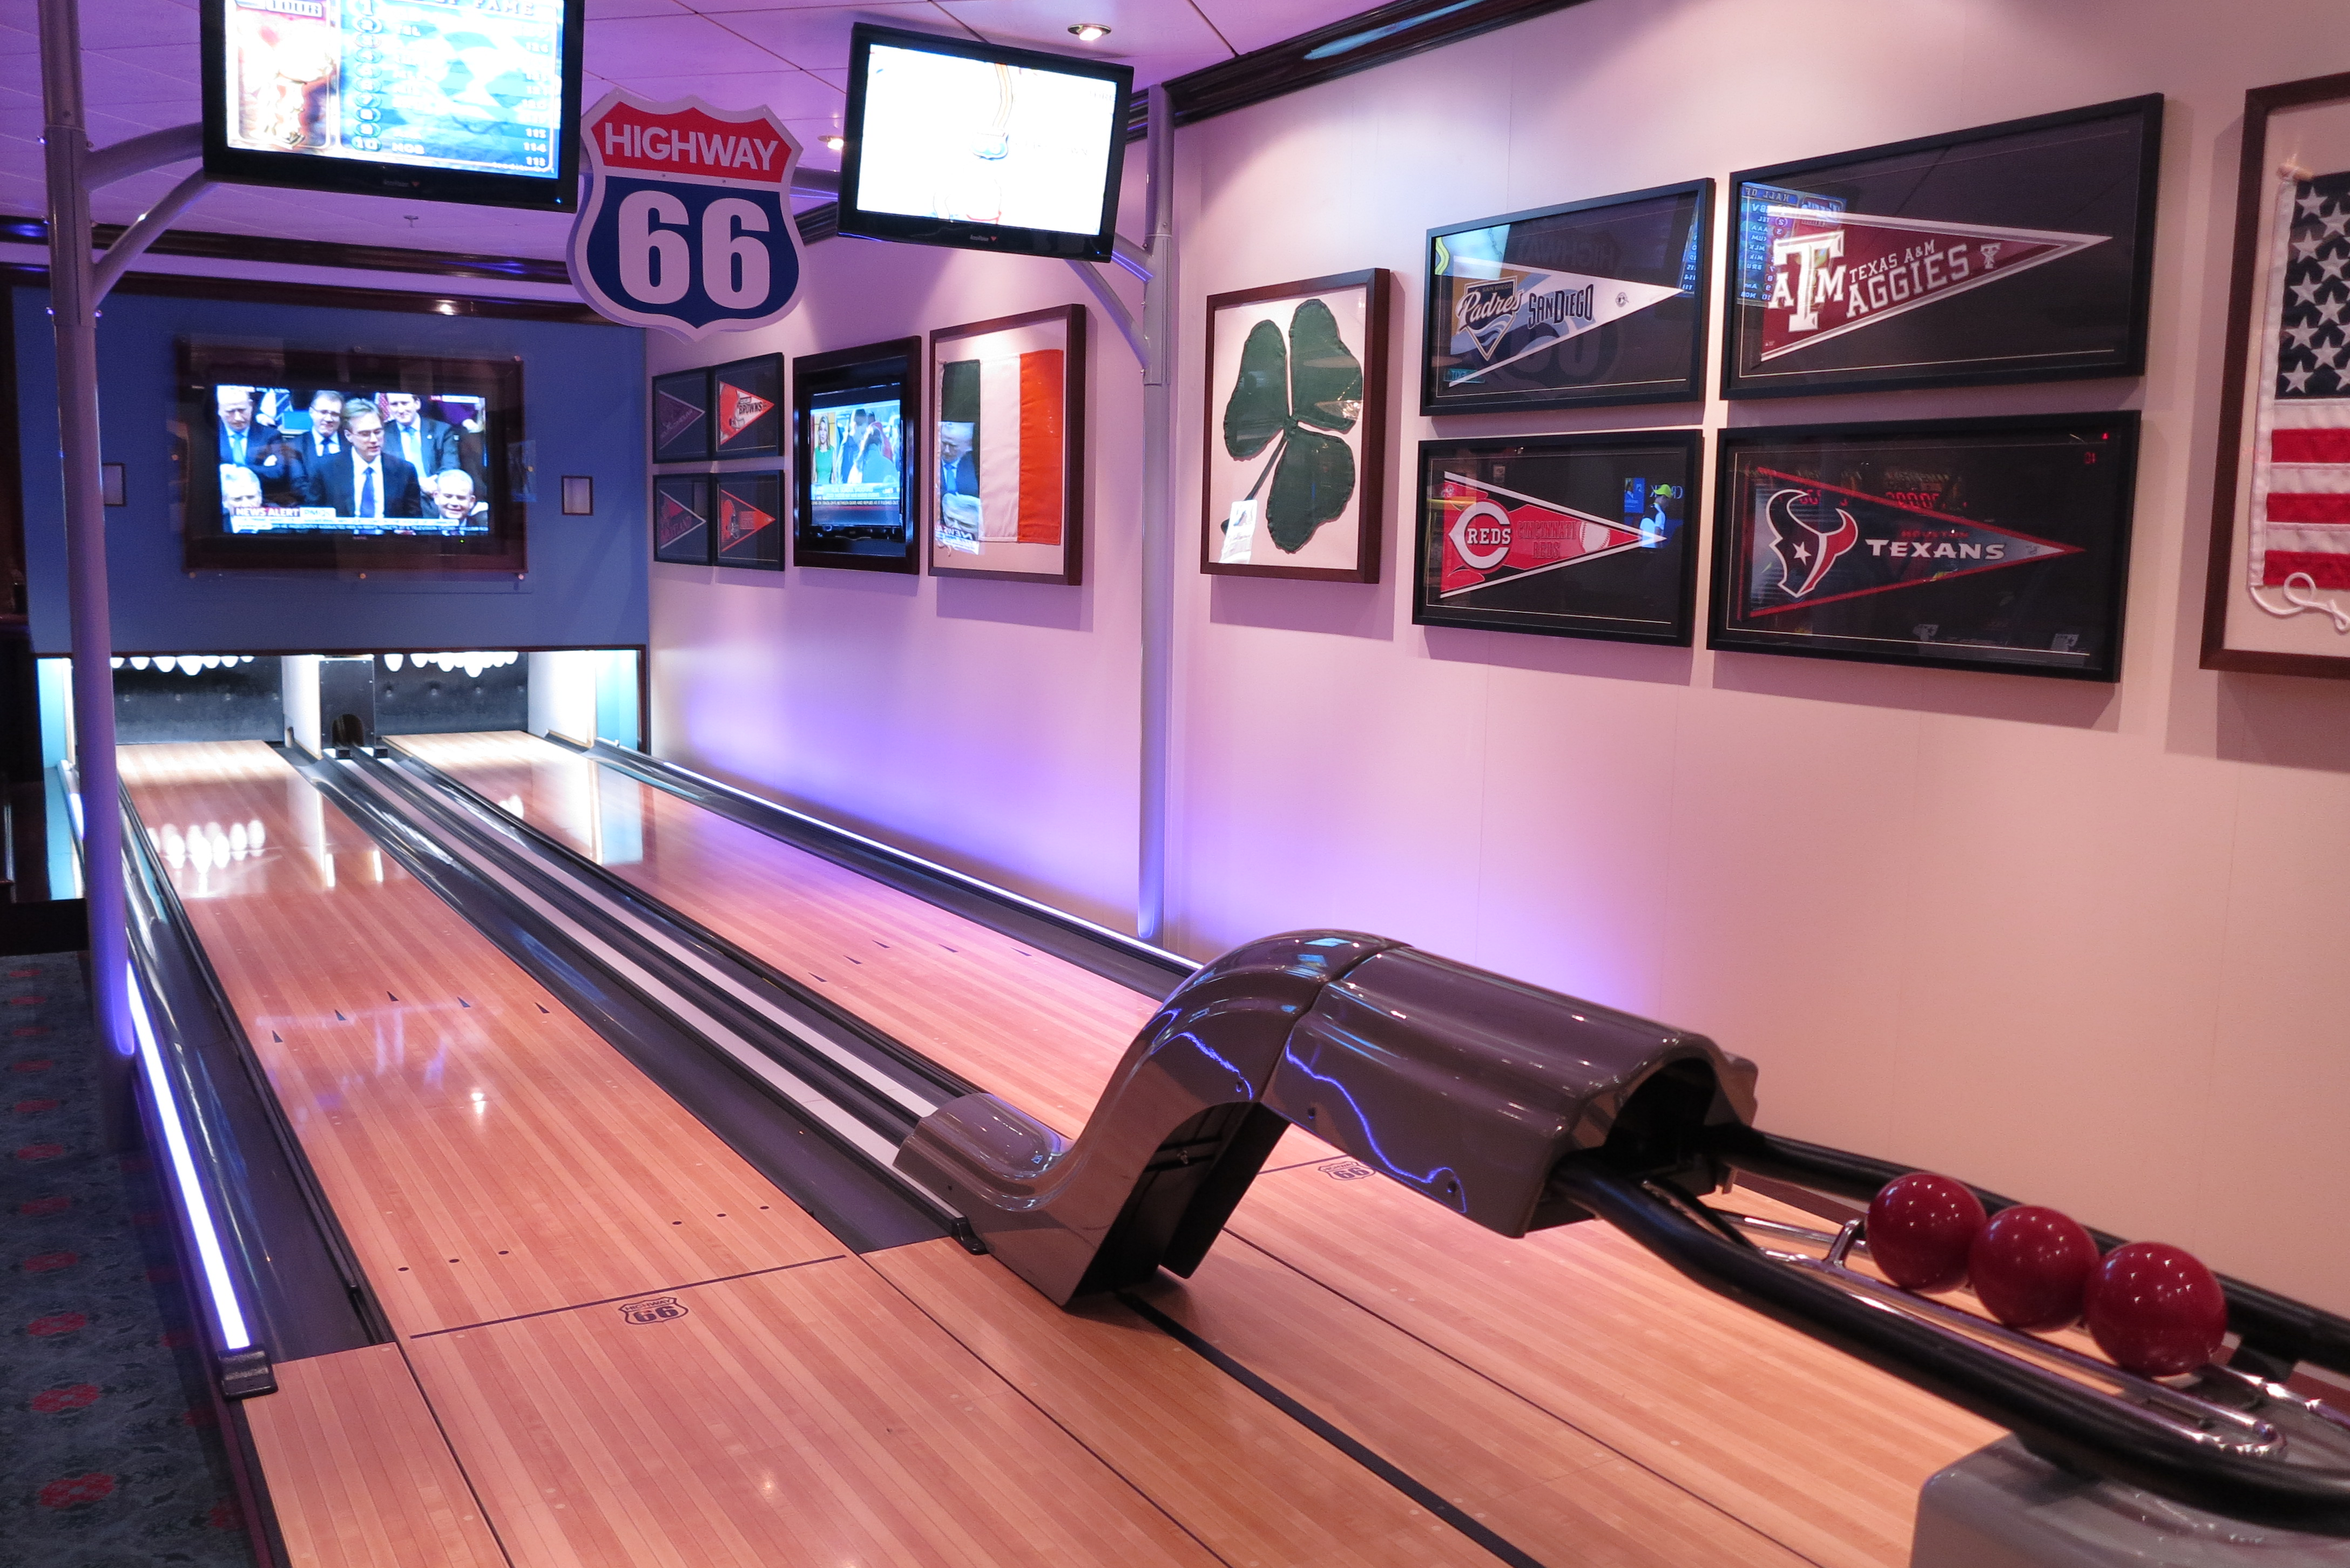 Striking: The bowling alley (Picture: Dave Monk)